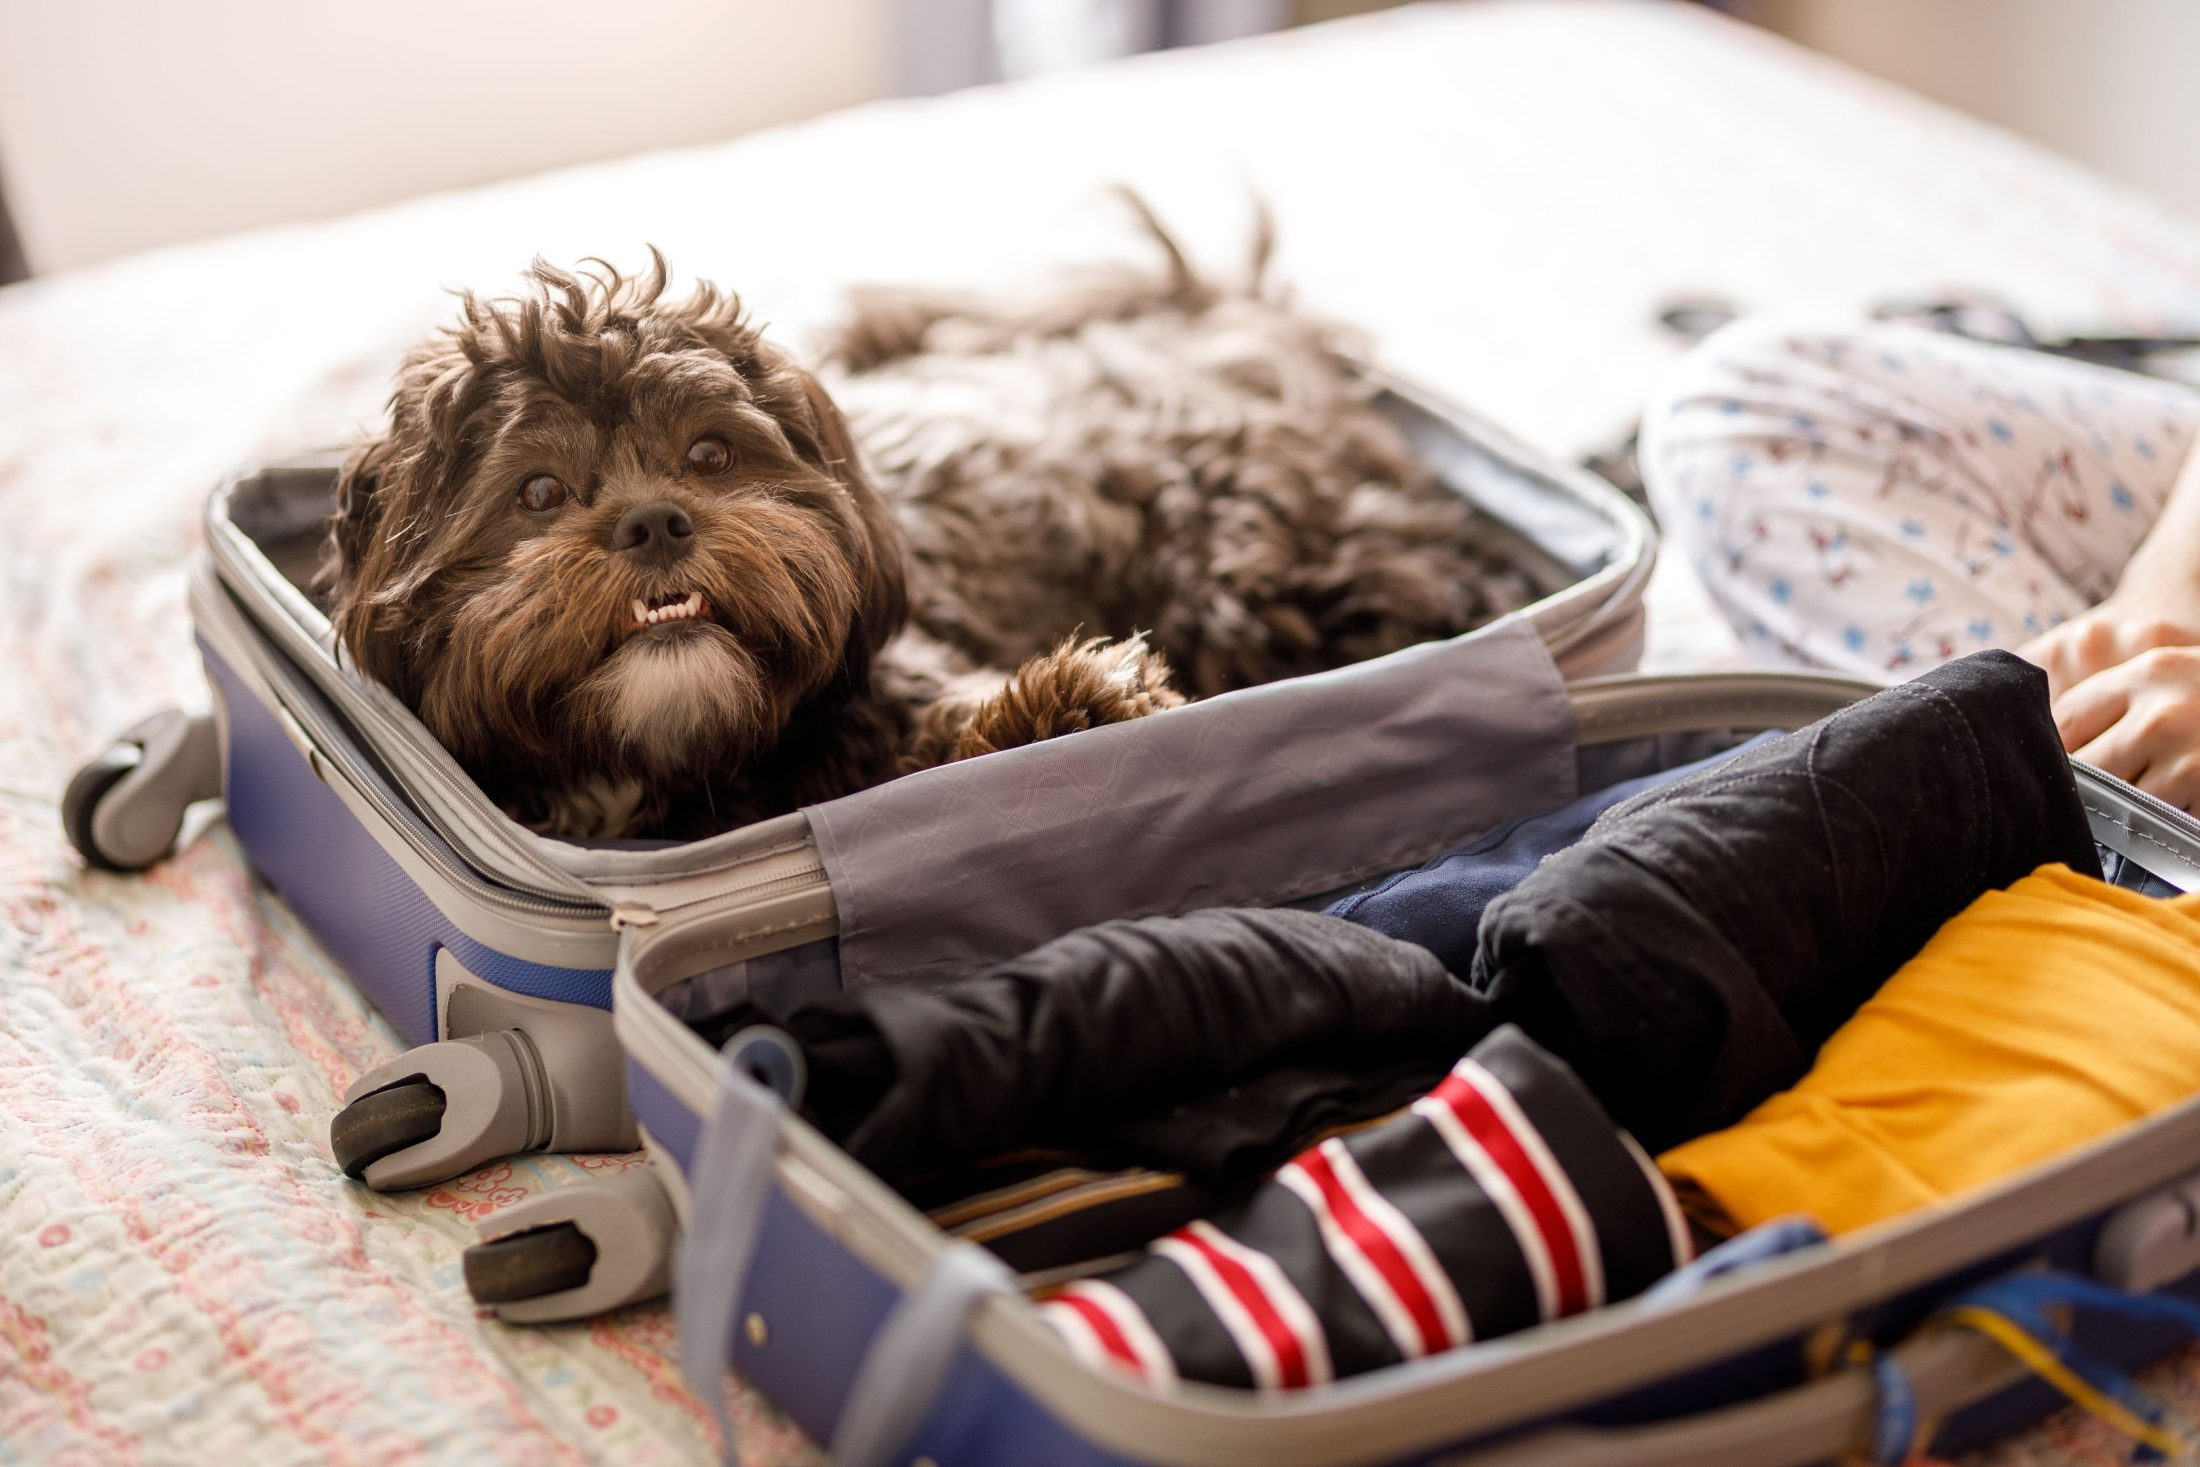 Dog sitting in suitcase ready to travel.